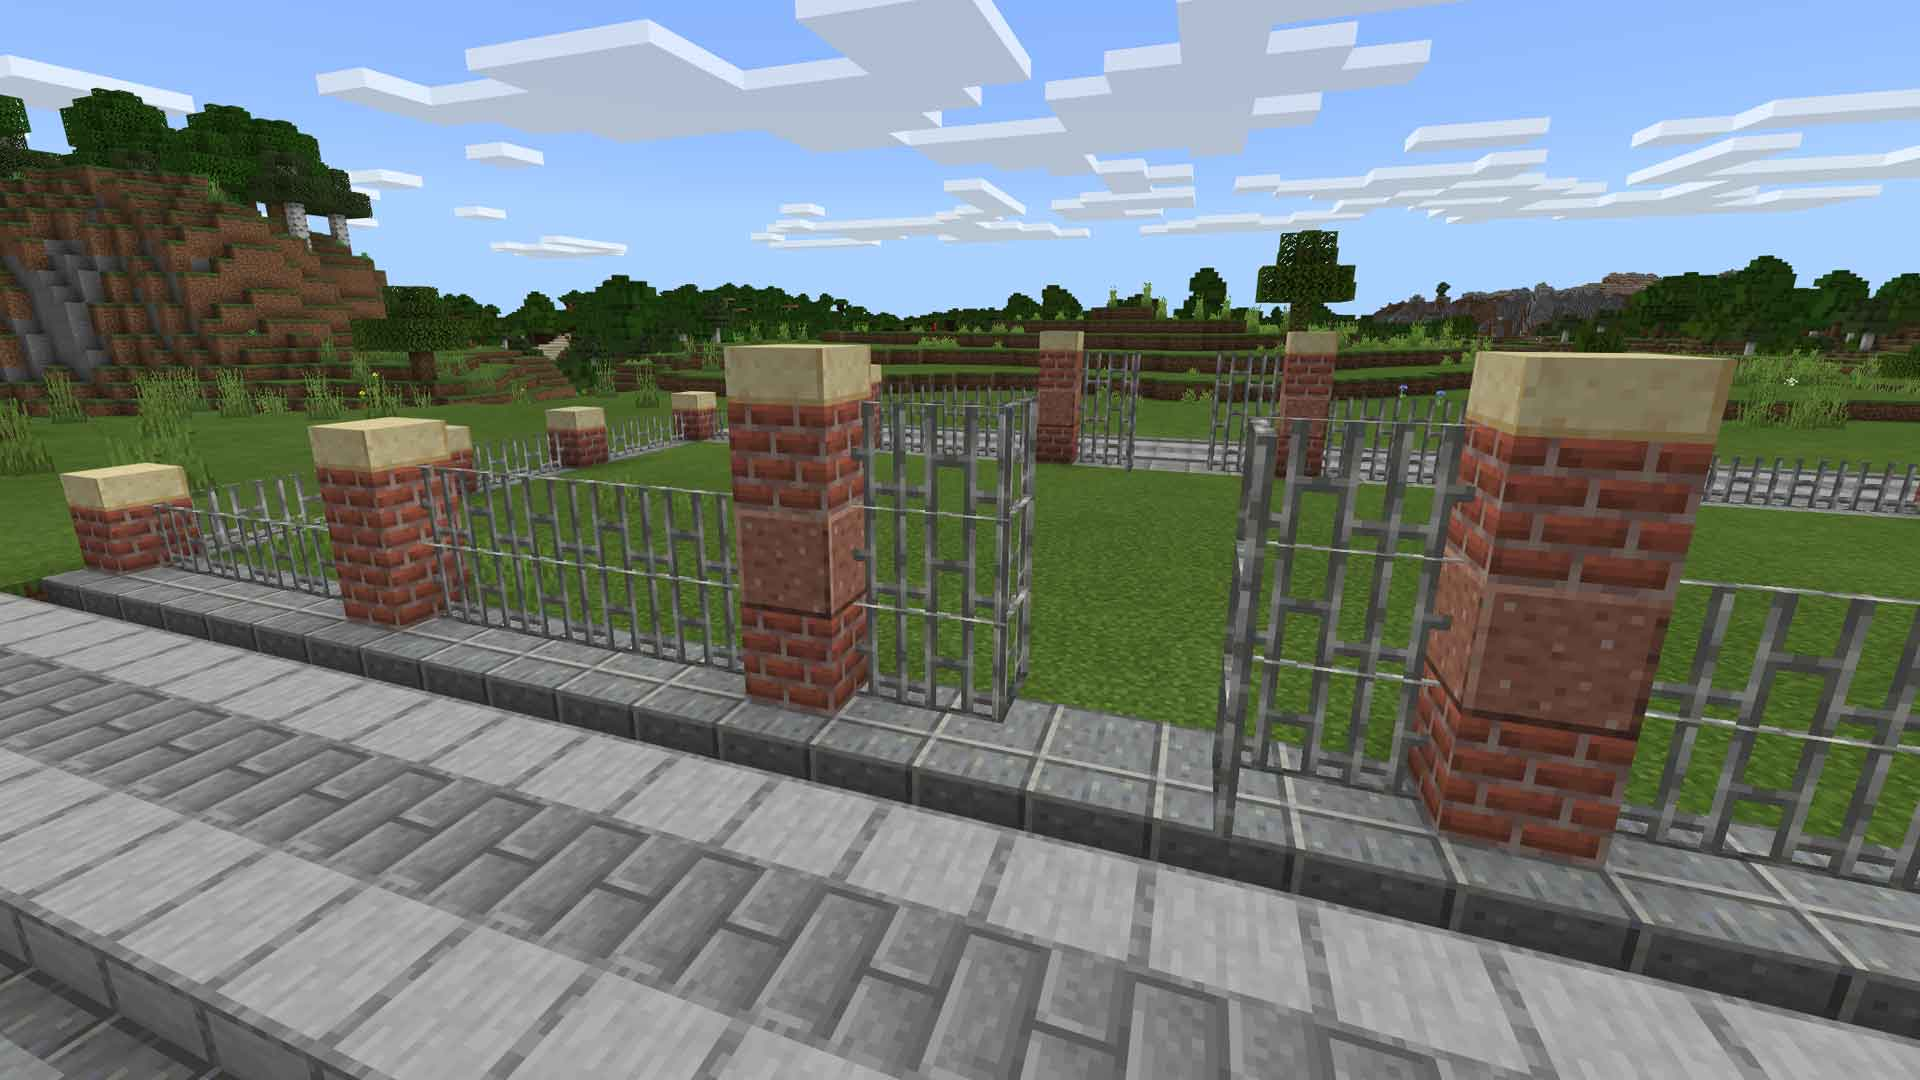 Minecraft Fancy Brick Fence Guide - Gamerheadquarters